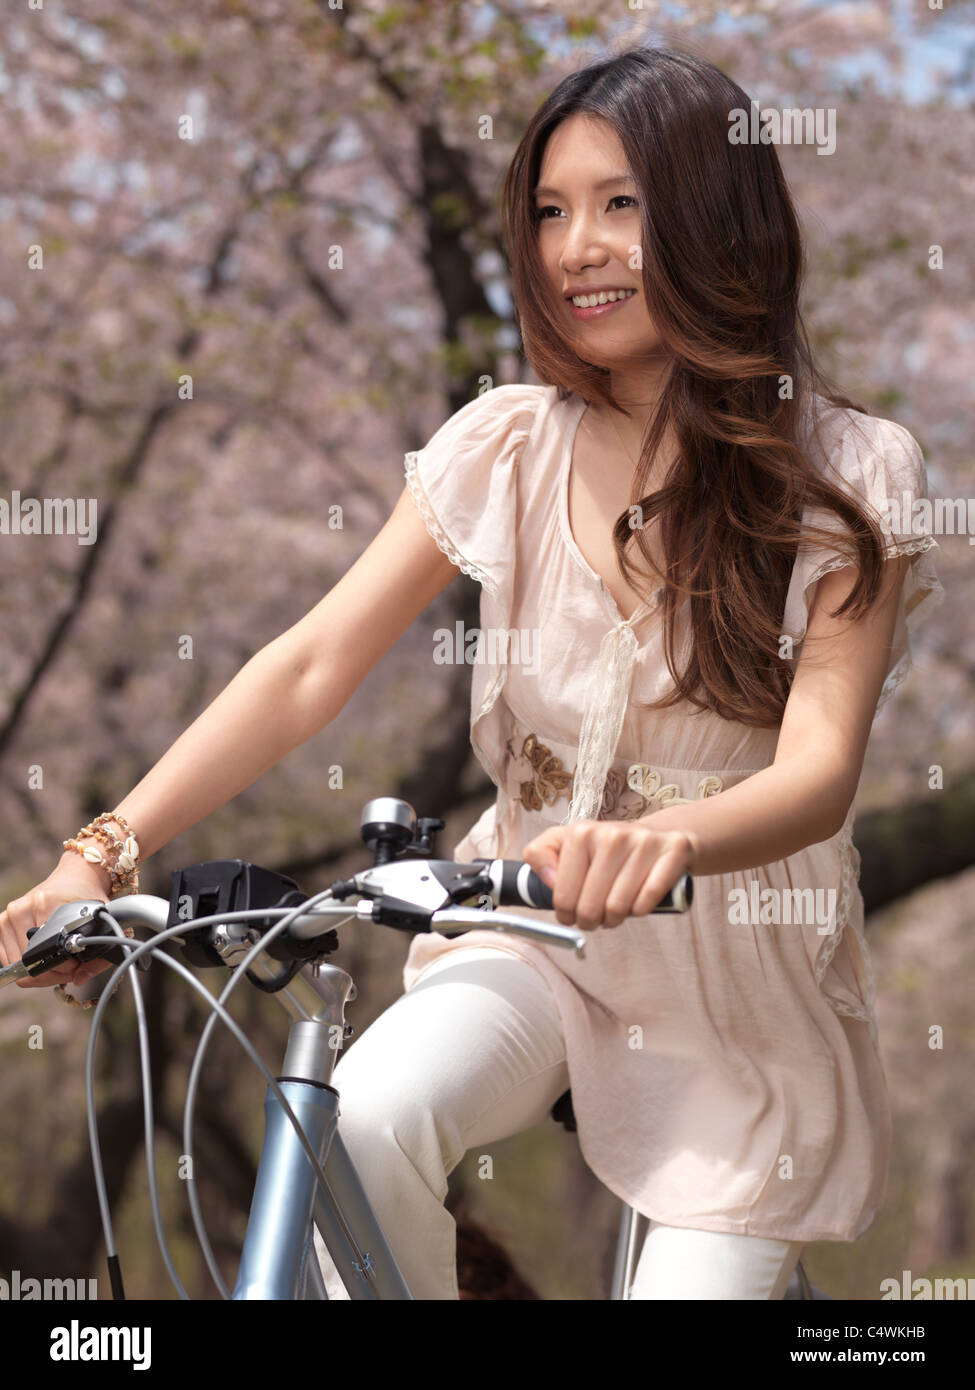 Young smiling woman sitting in a park passé cerisiers en fleurs Photo Stock